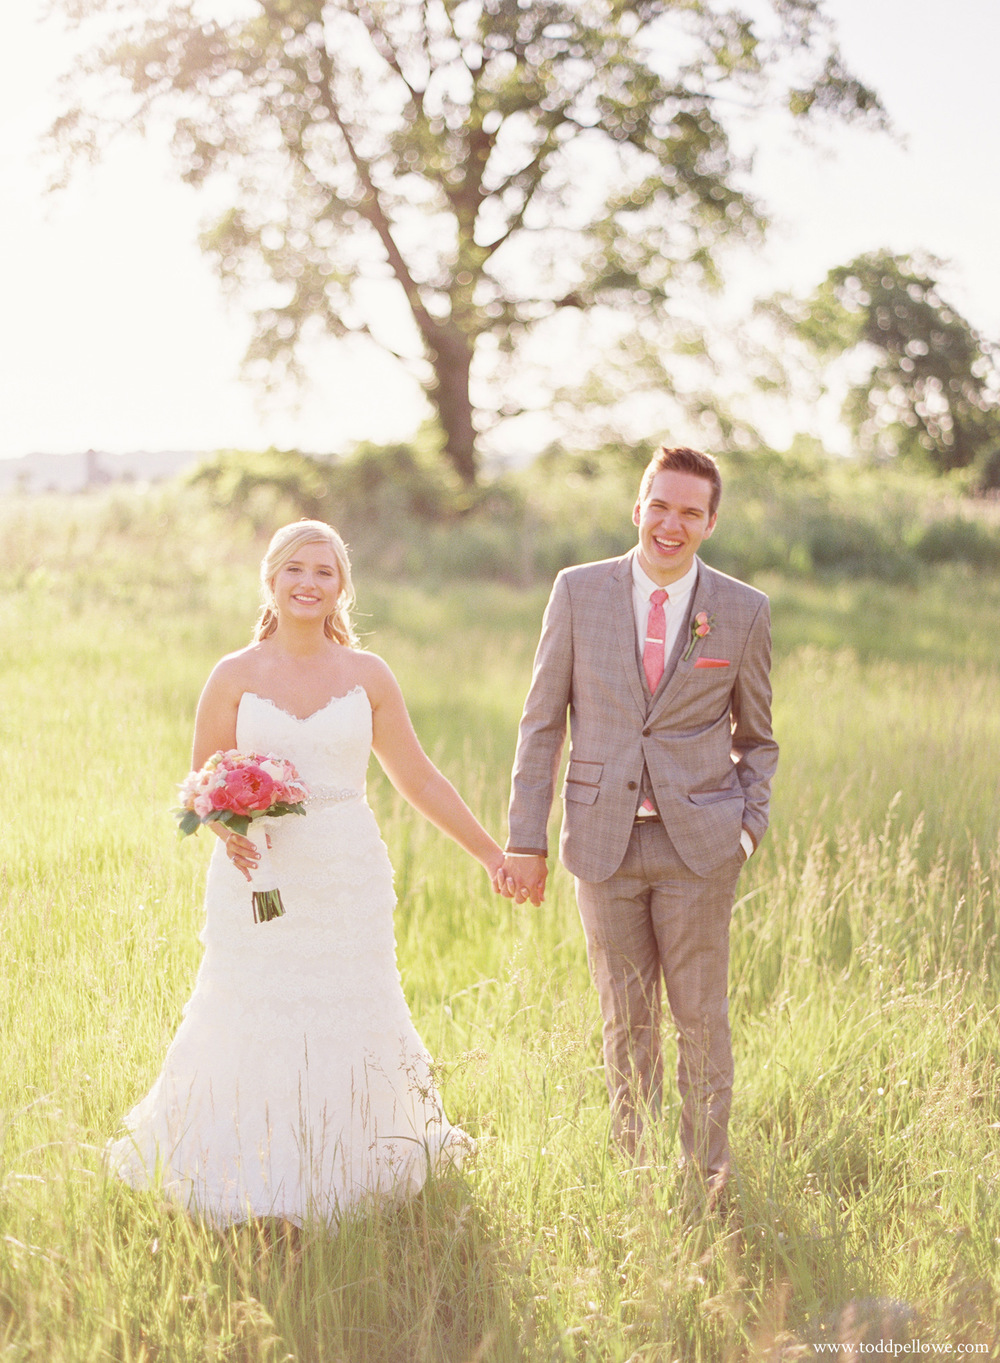 34-gingerwoods-farm-wedding-photography-013.jpg